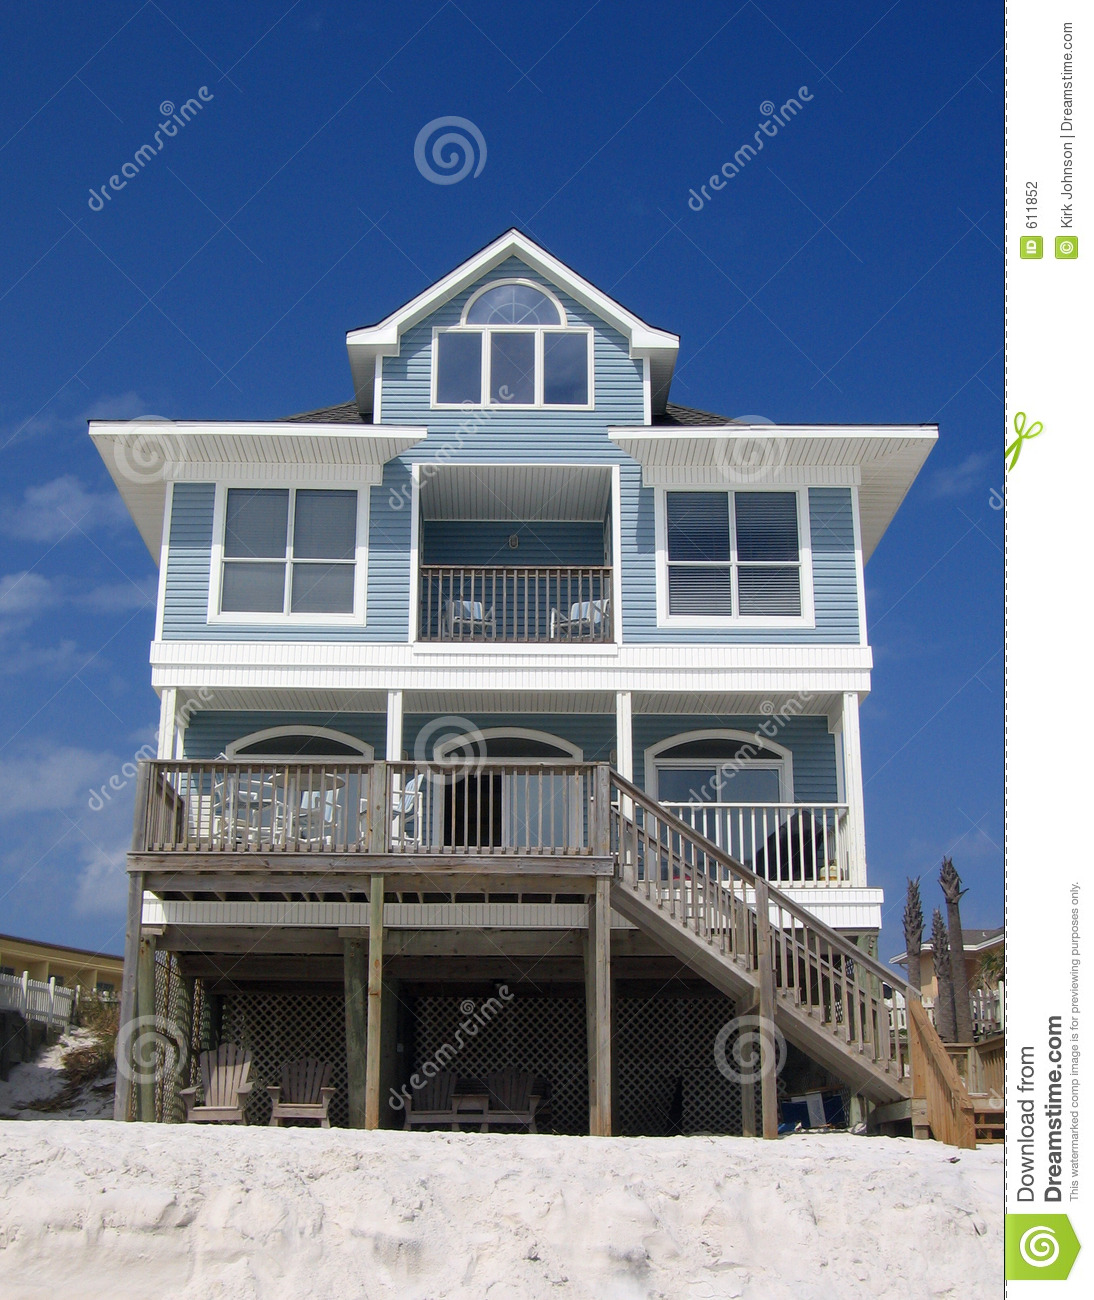 82222 10 Space Saving Sliding Doors Your Small Space in addition St Helena Barbados Gallery likewise Charleston Single Style House Plans further Modern Hotel Bedroom Floor Plan additionally Italian Home Architecture Super Minimalist House Design. on beach cottage interior design